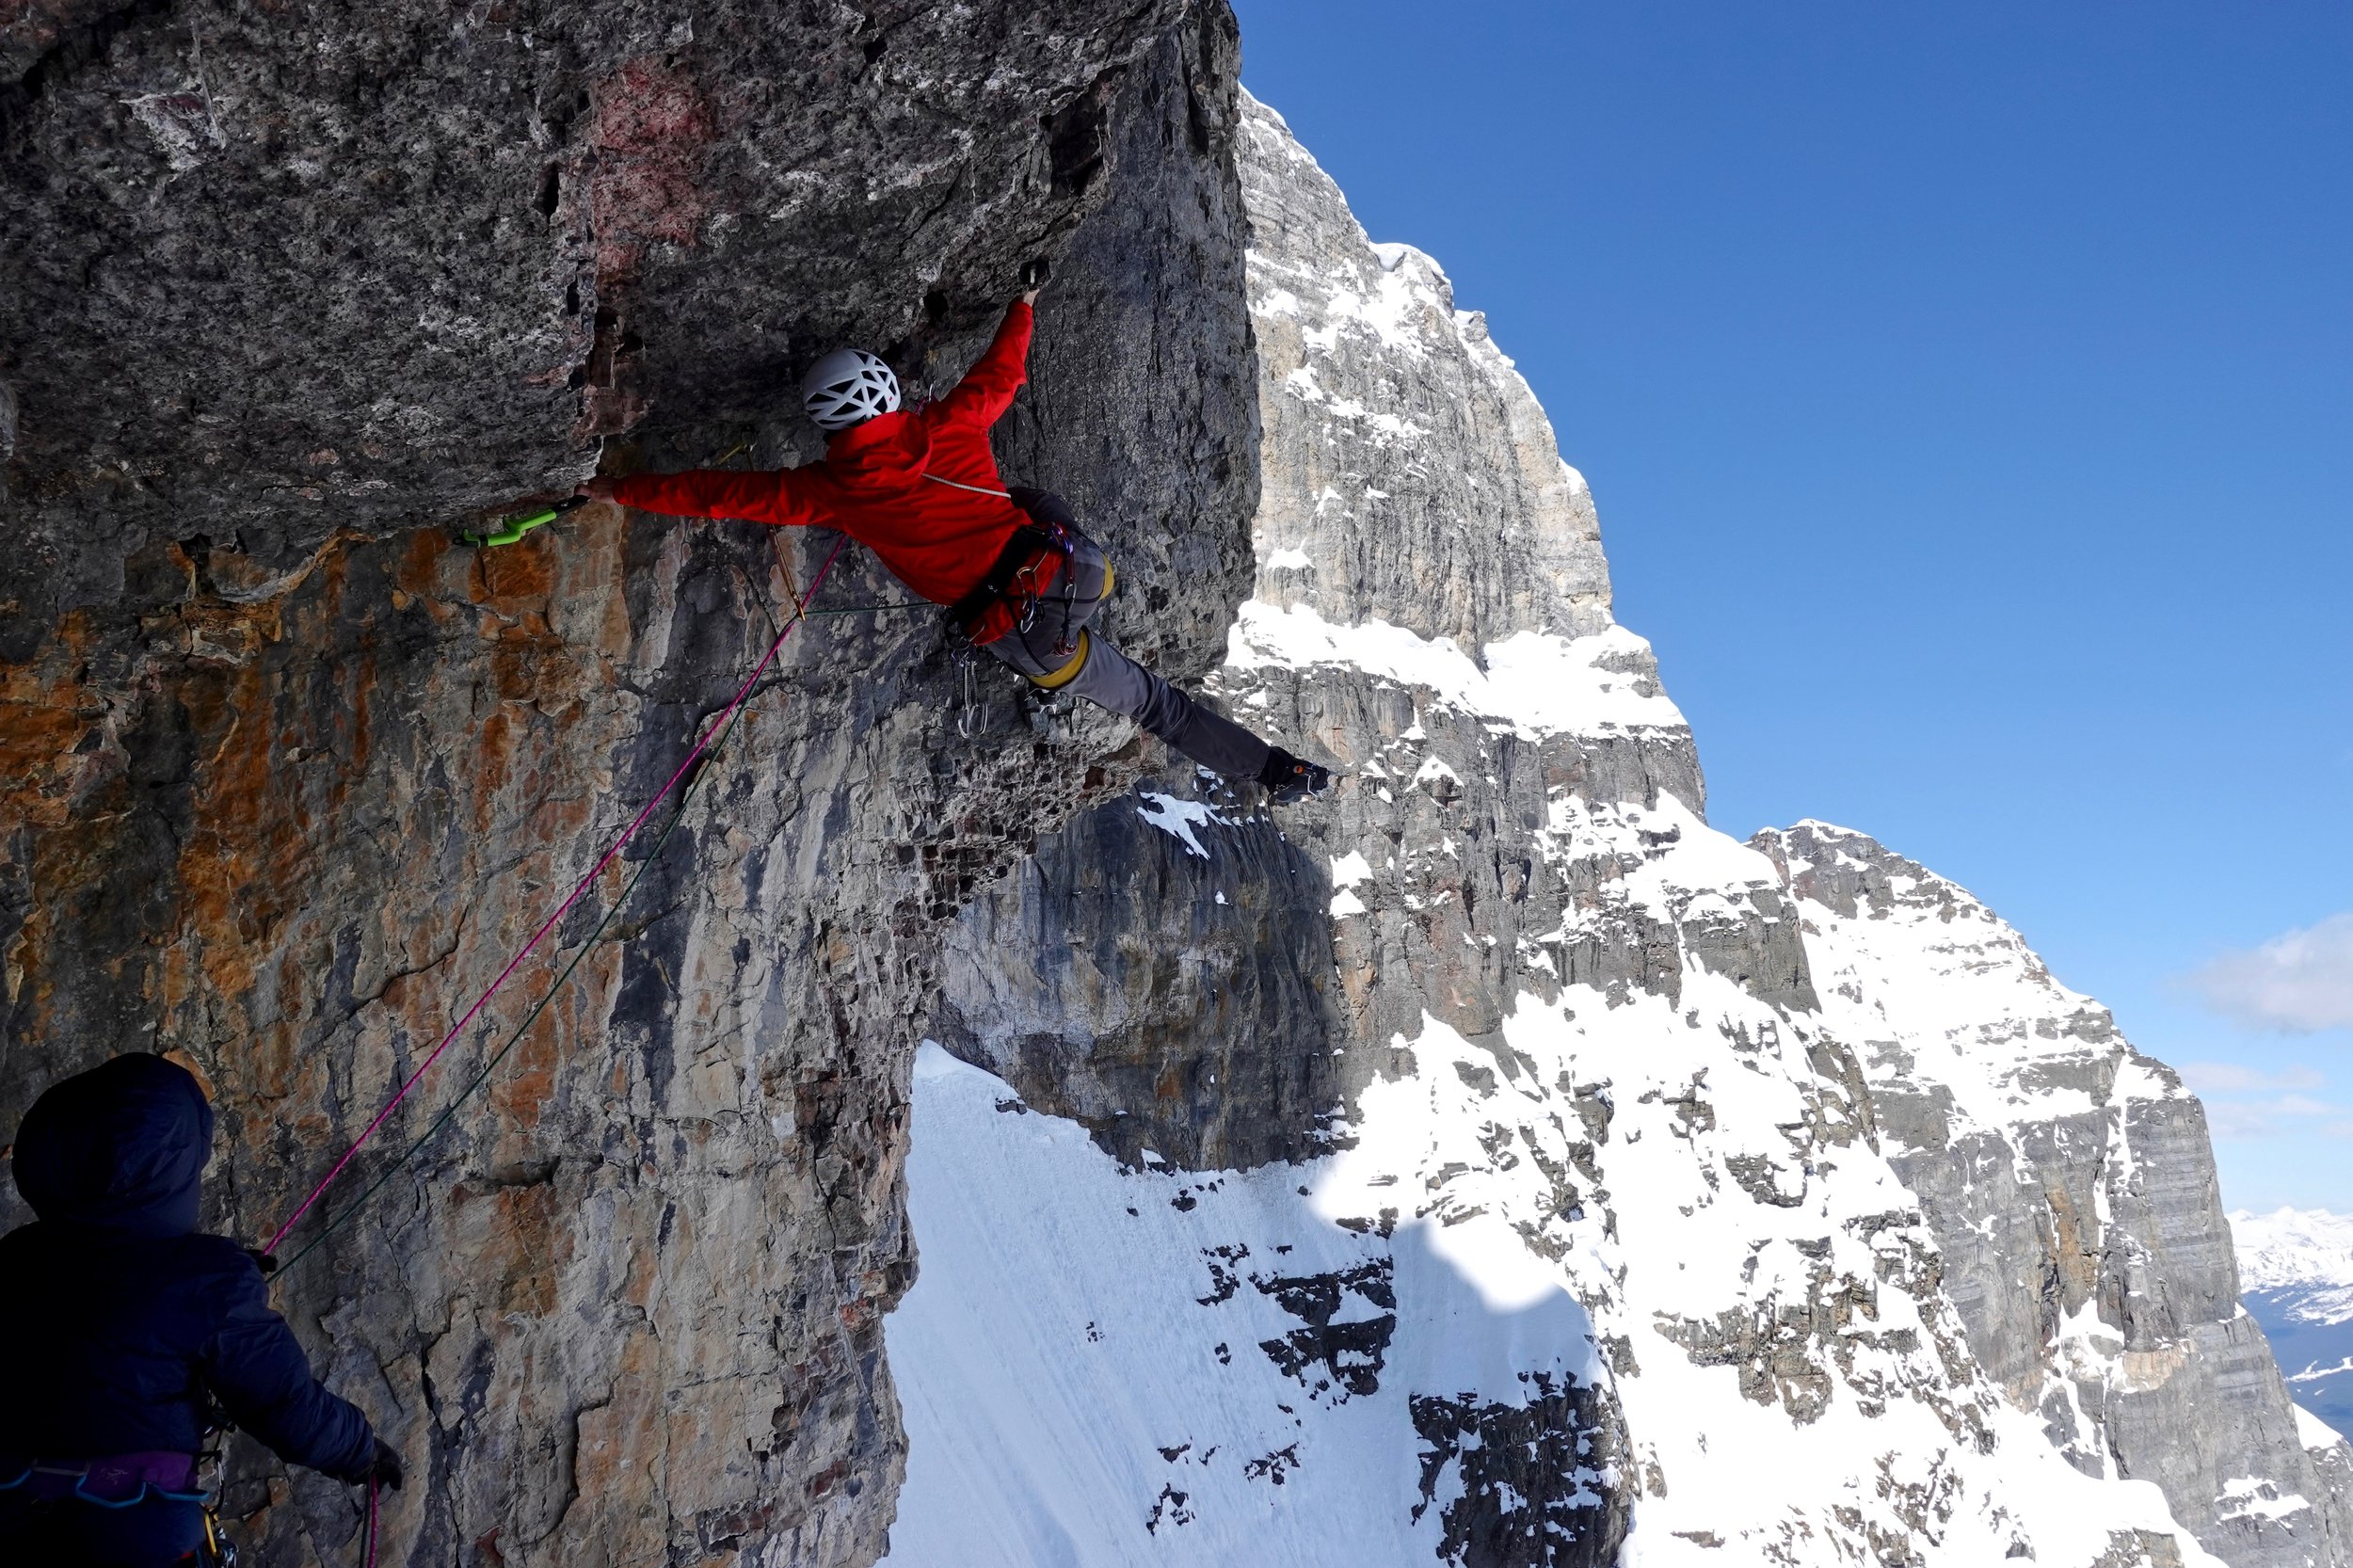 Luka Lindič firing the crux (M8) roof on the direct east face of Mt. Fay.